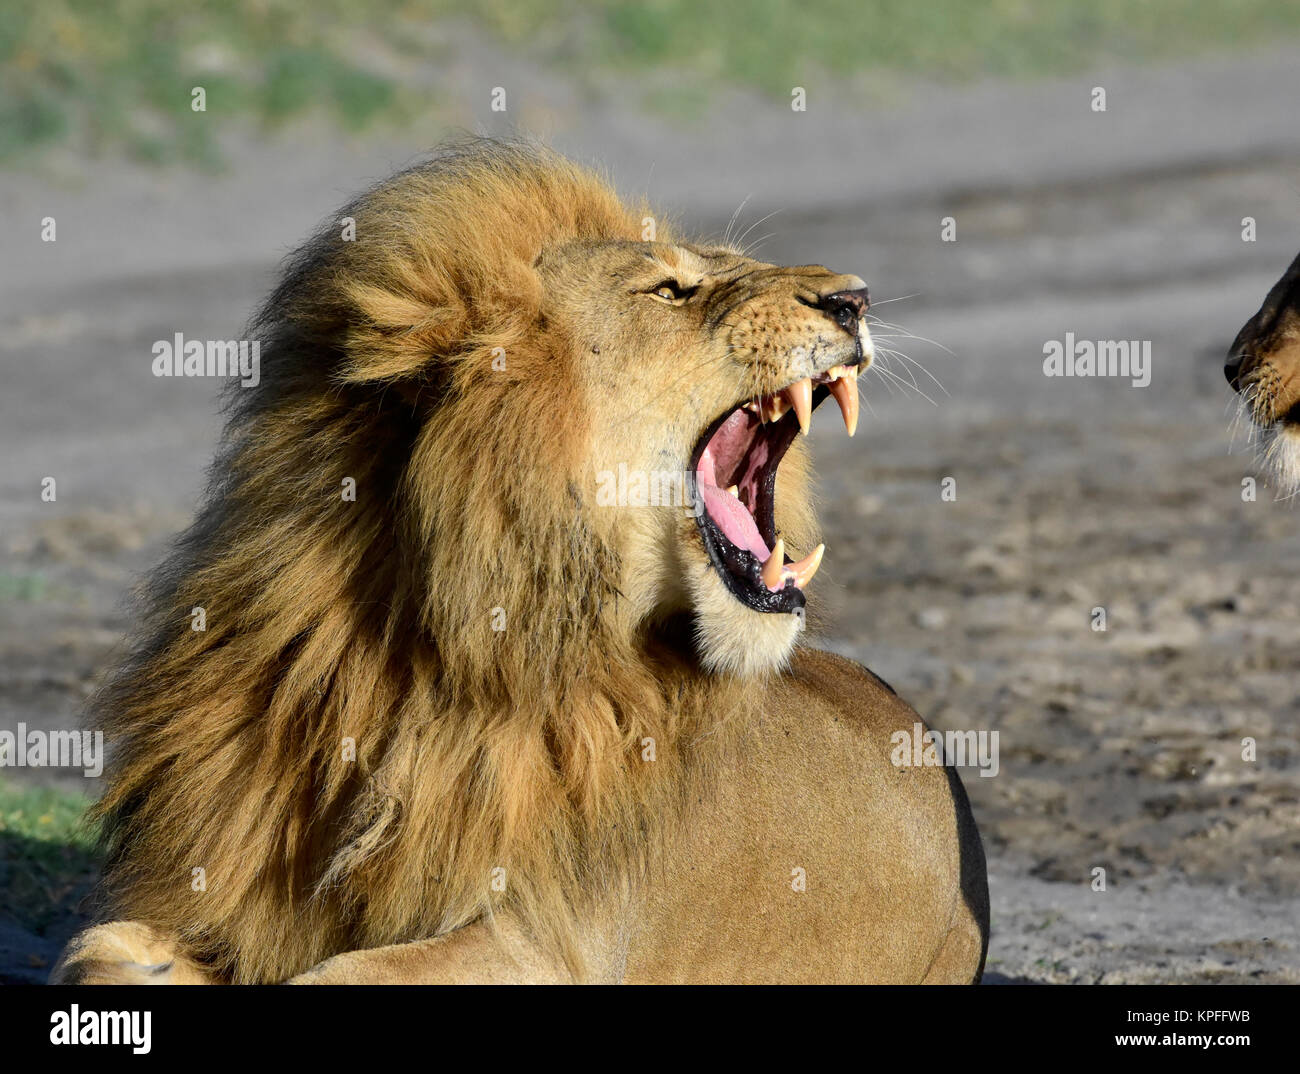 Wildlife sightseeing in one of the prime wildlife destinations on earht -- Serengeti, Tanzania. Male lion snarling - Stock Image